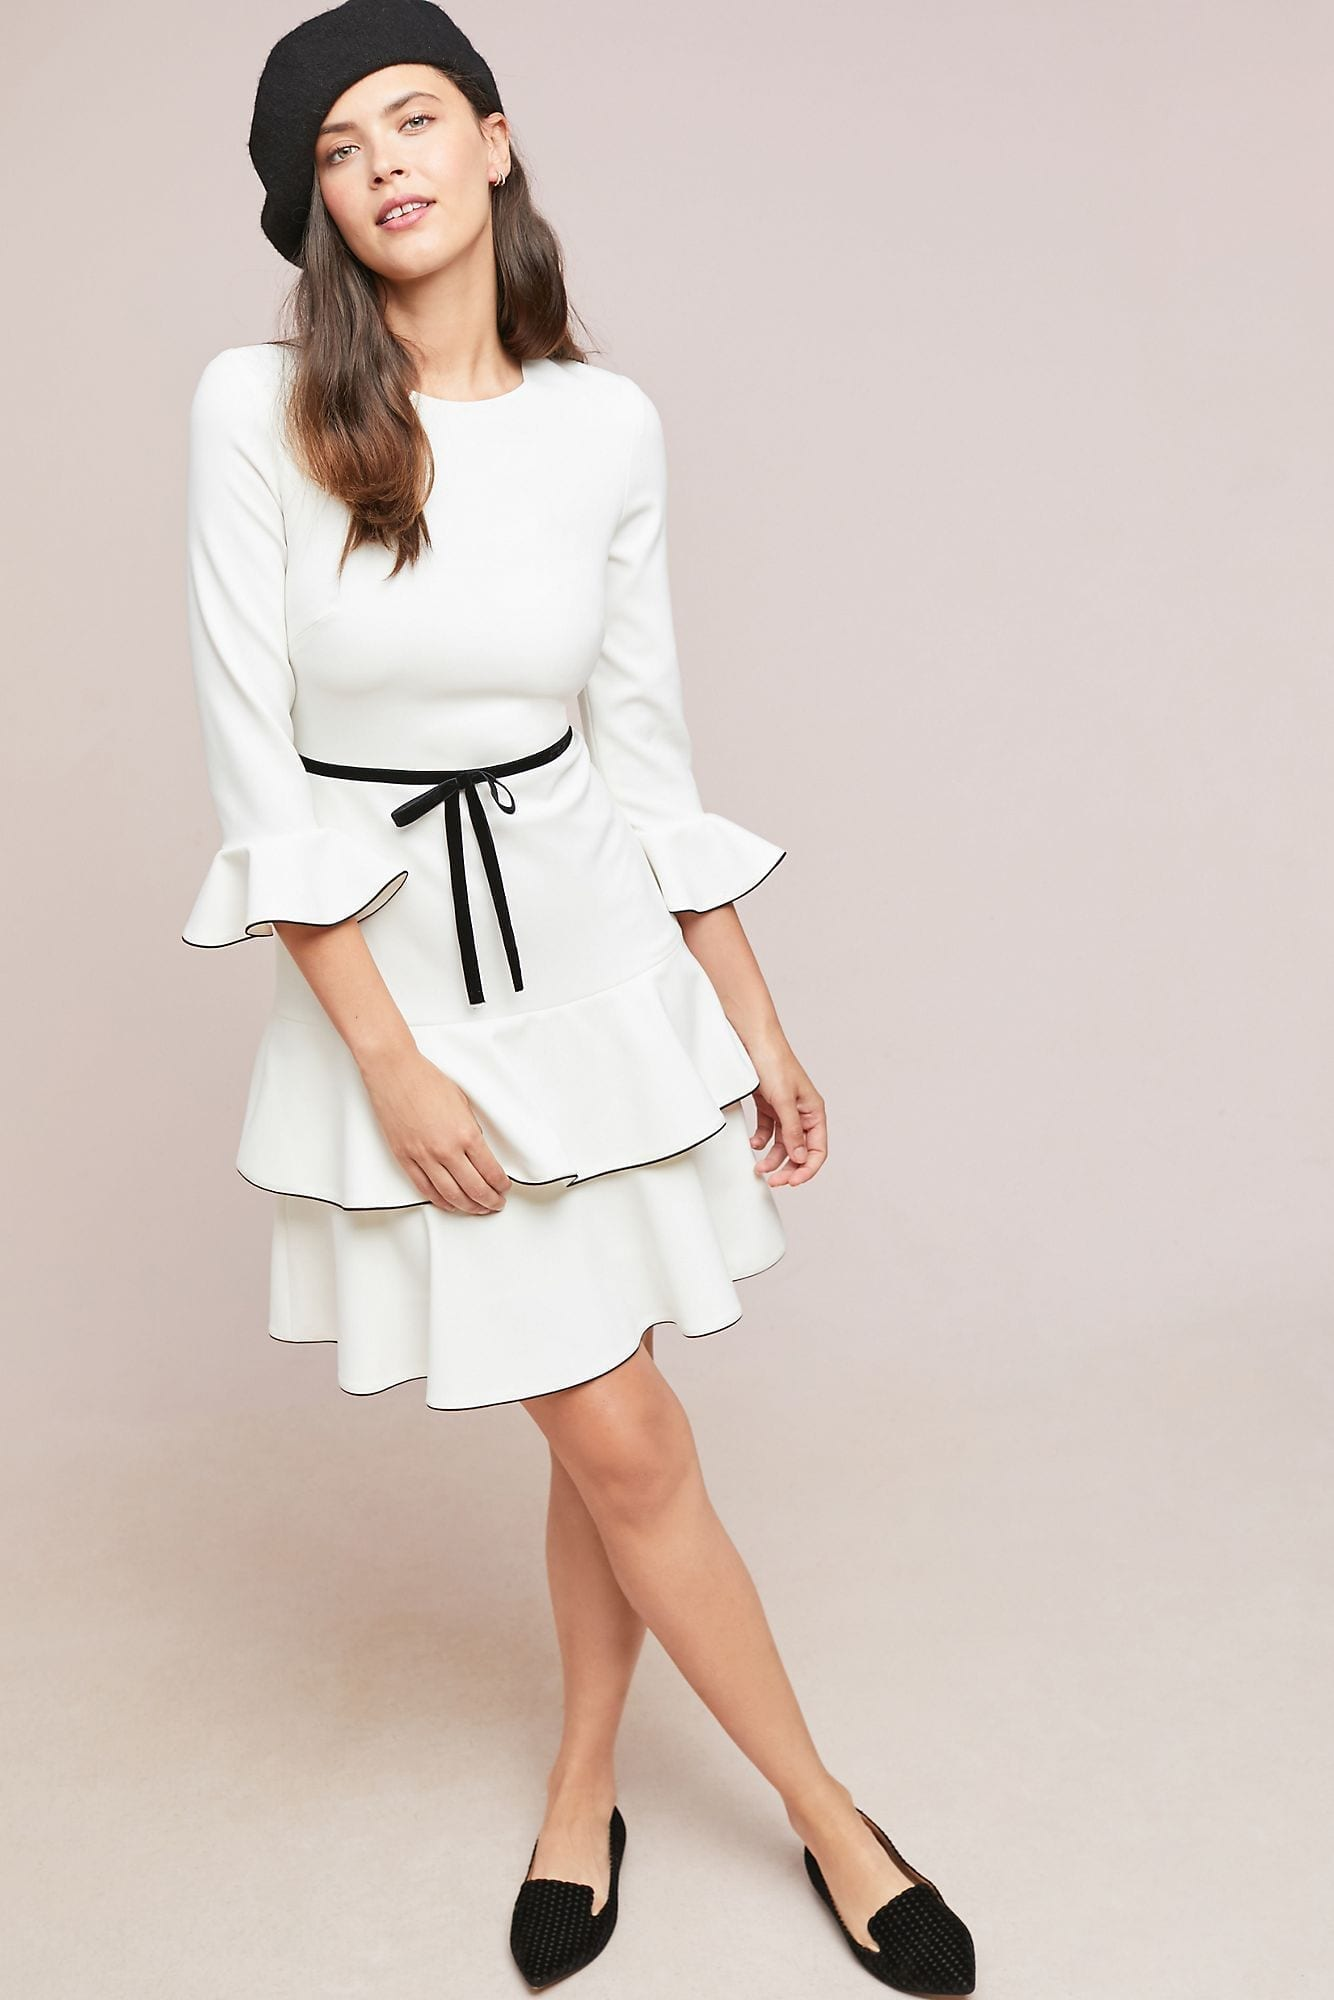 SHOSHANNA Wonderland Ruffled Ivory Dress